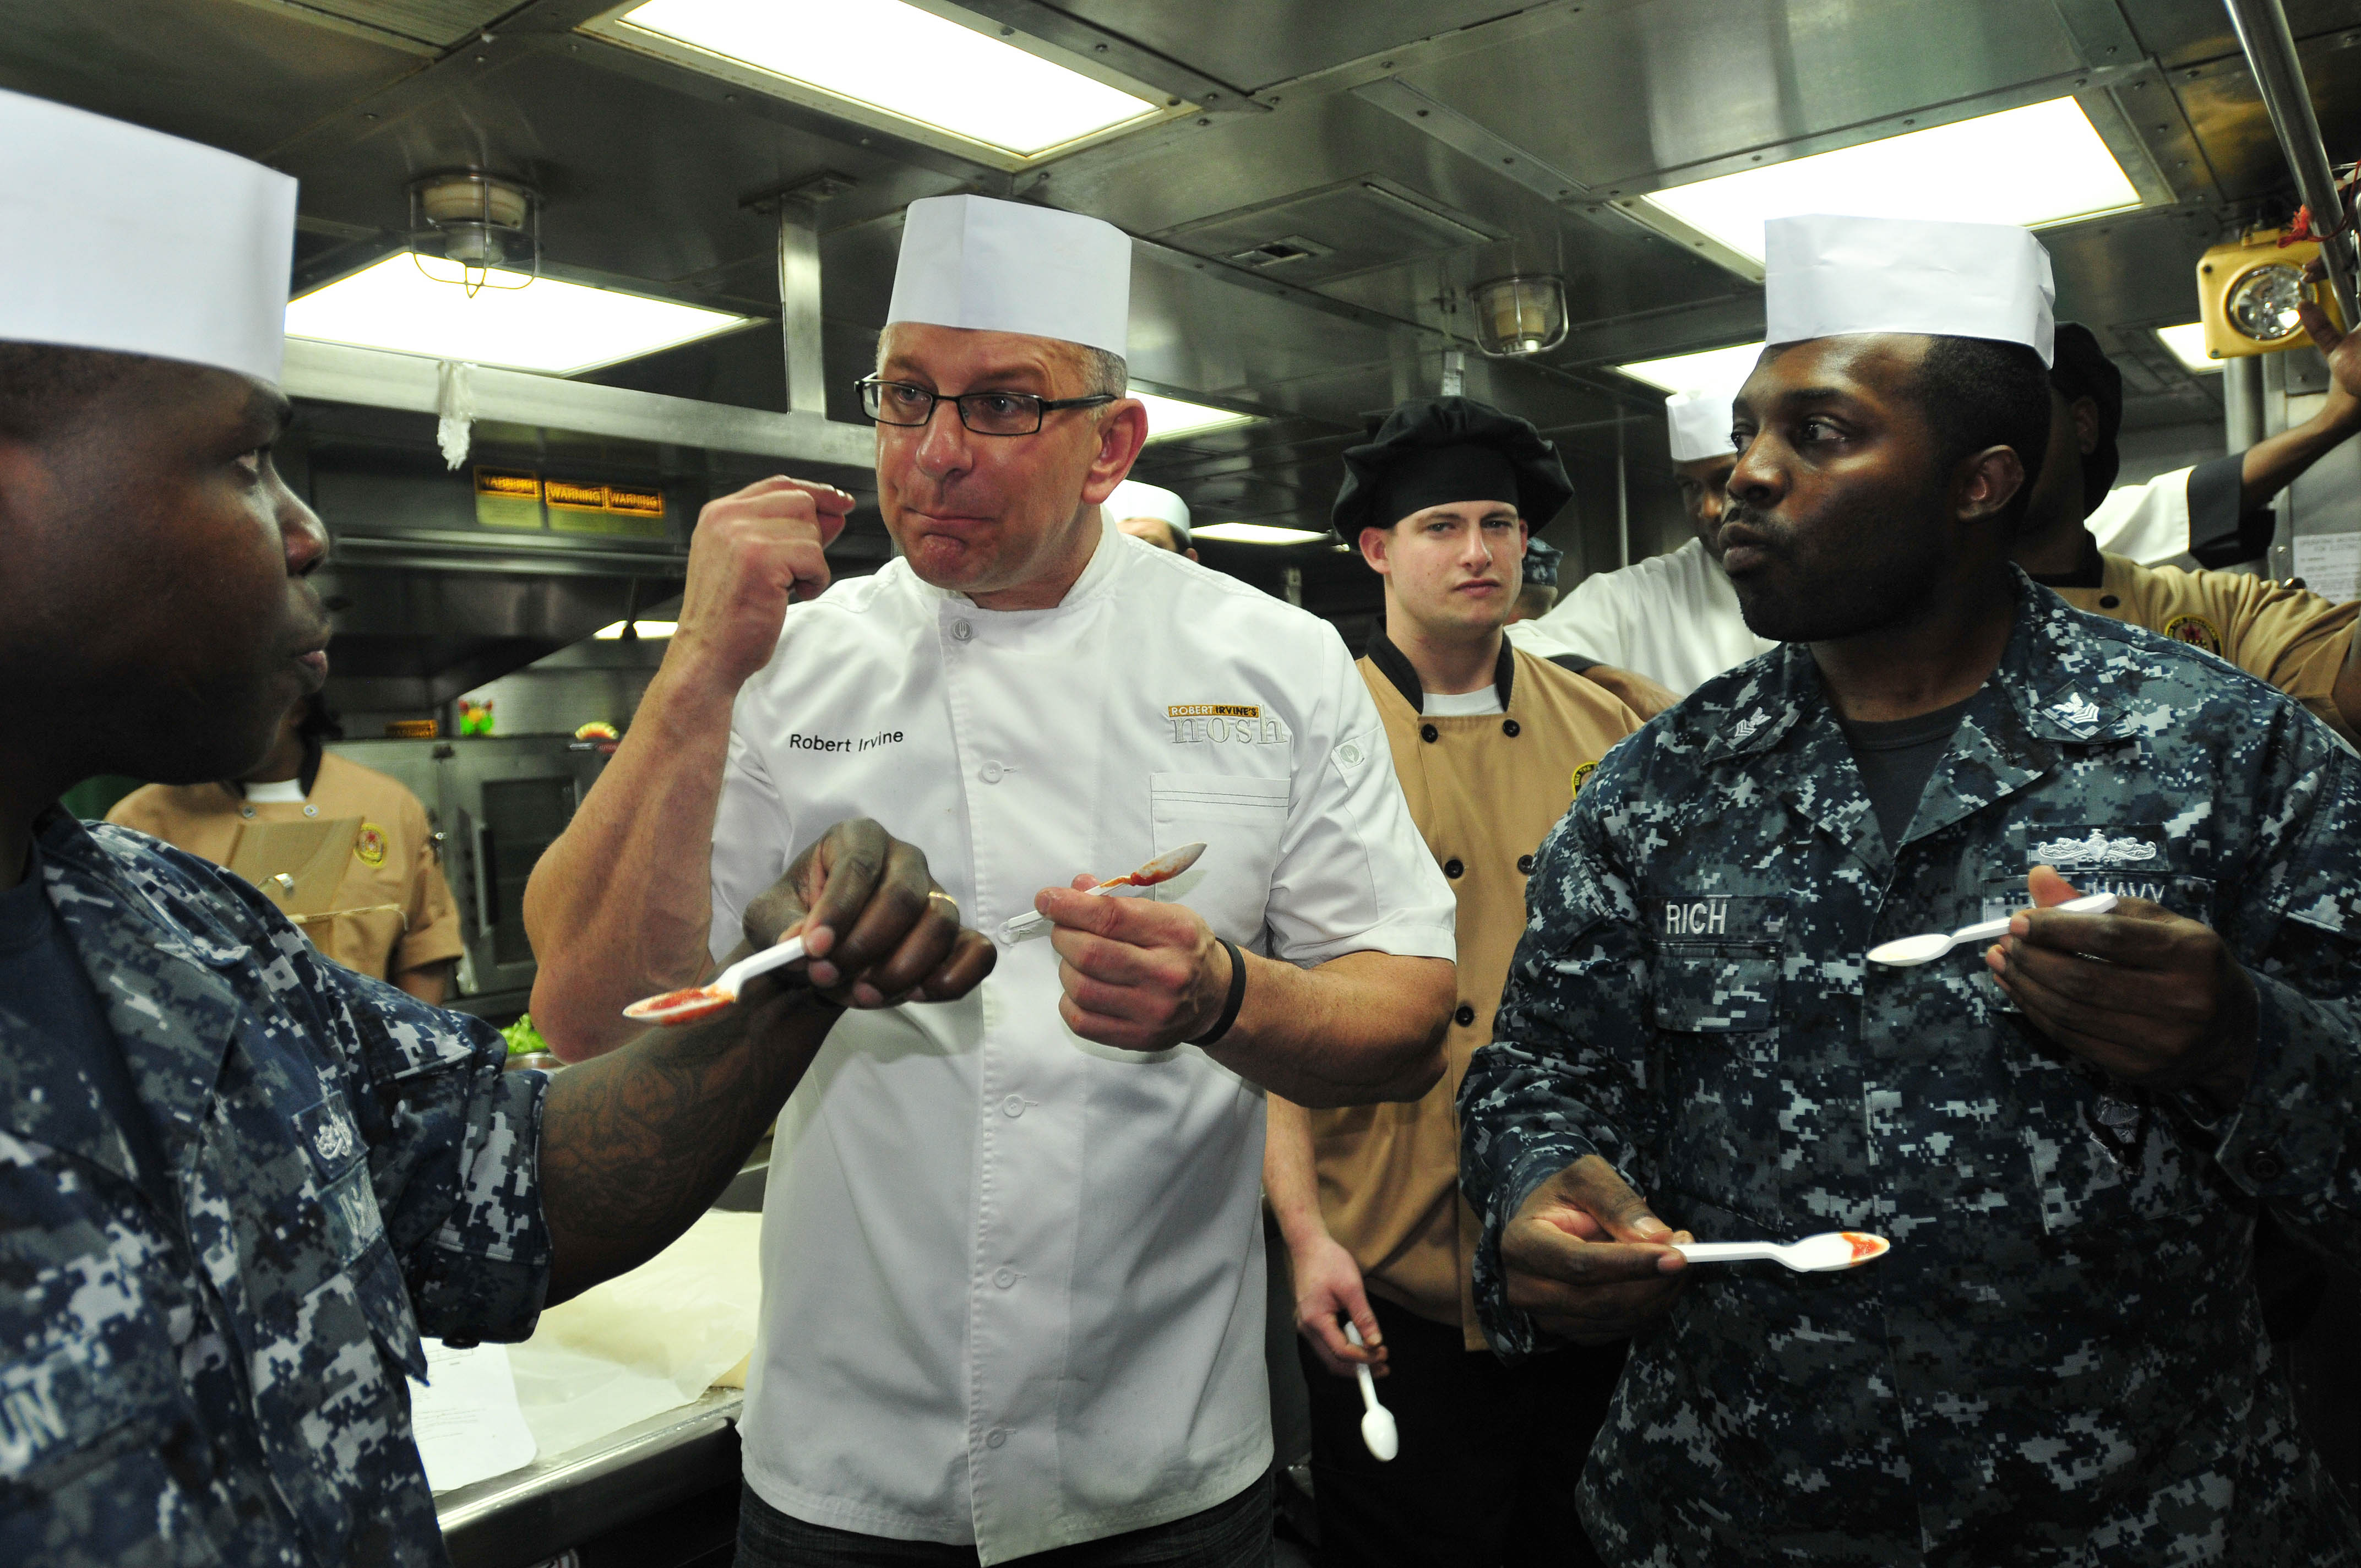 Robert irvine wikipedia irvine giving culinary advice to cooks aboard a us navy ship in october 2012 irvine cooking forumfinder Choice Image